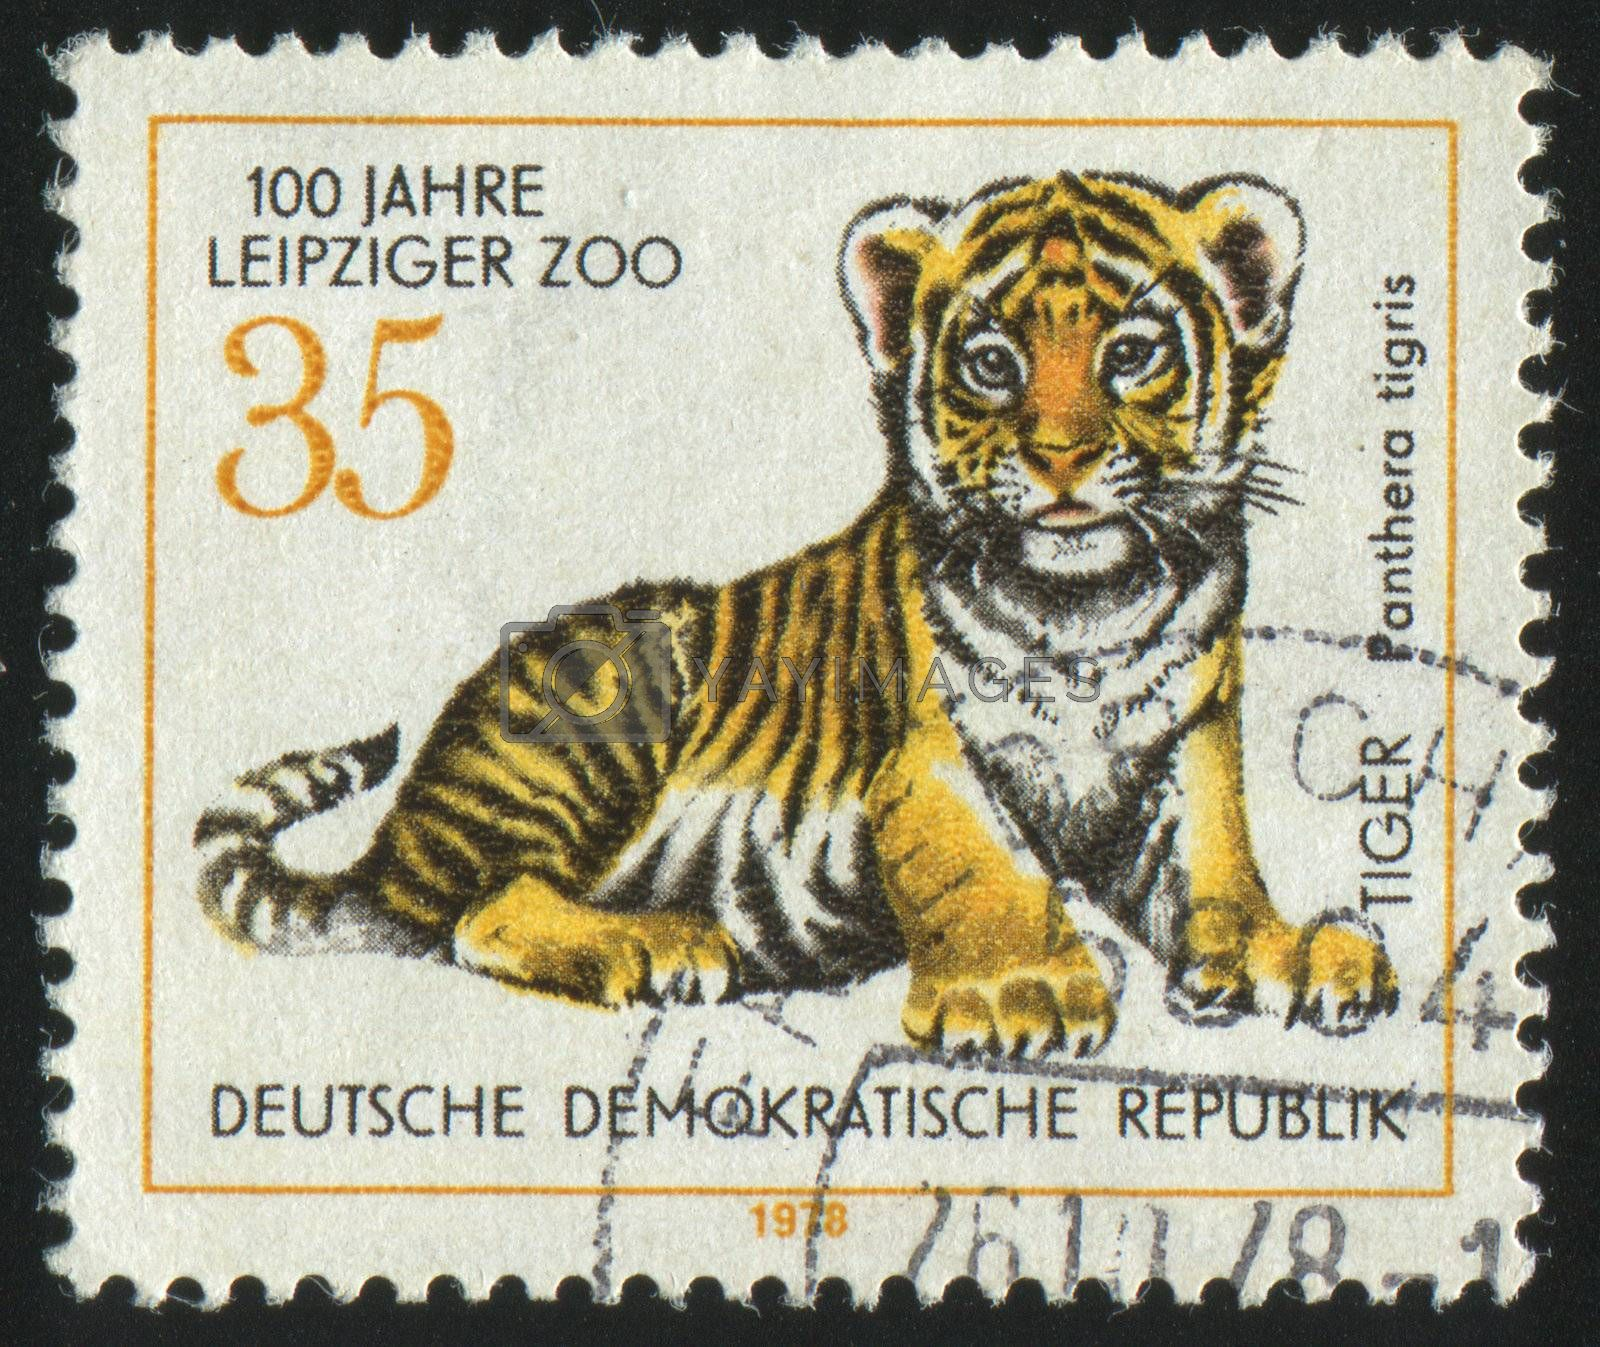 GERMANY- CIRCA 1978: stamp printed by Germany, shows Young tiger, circa 1978.